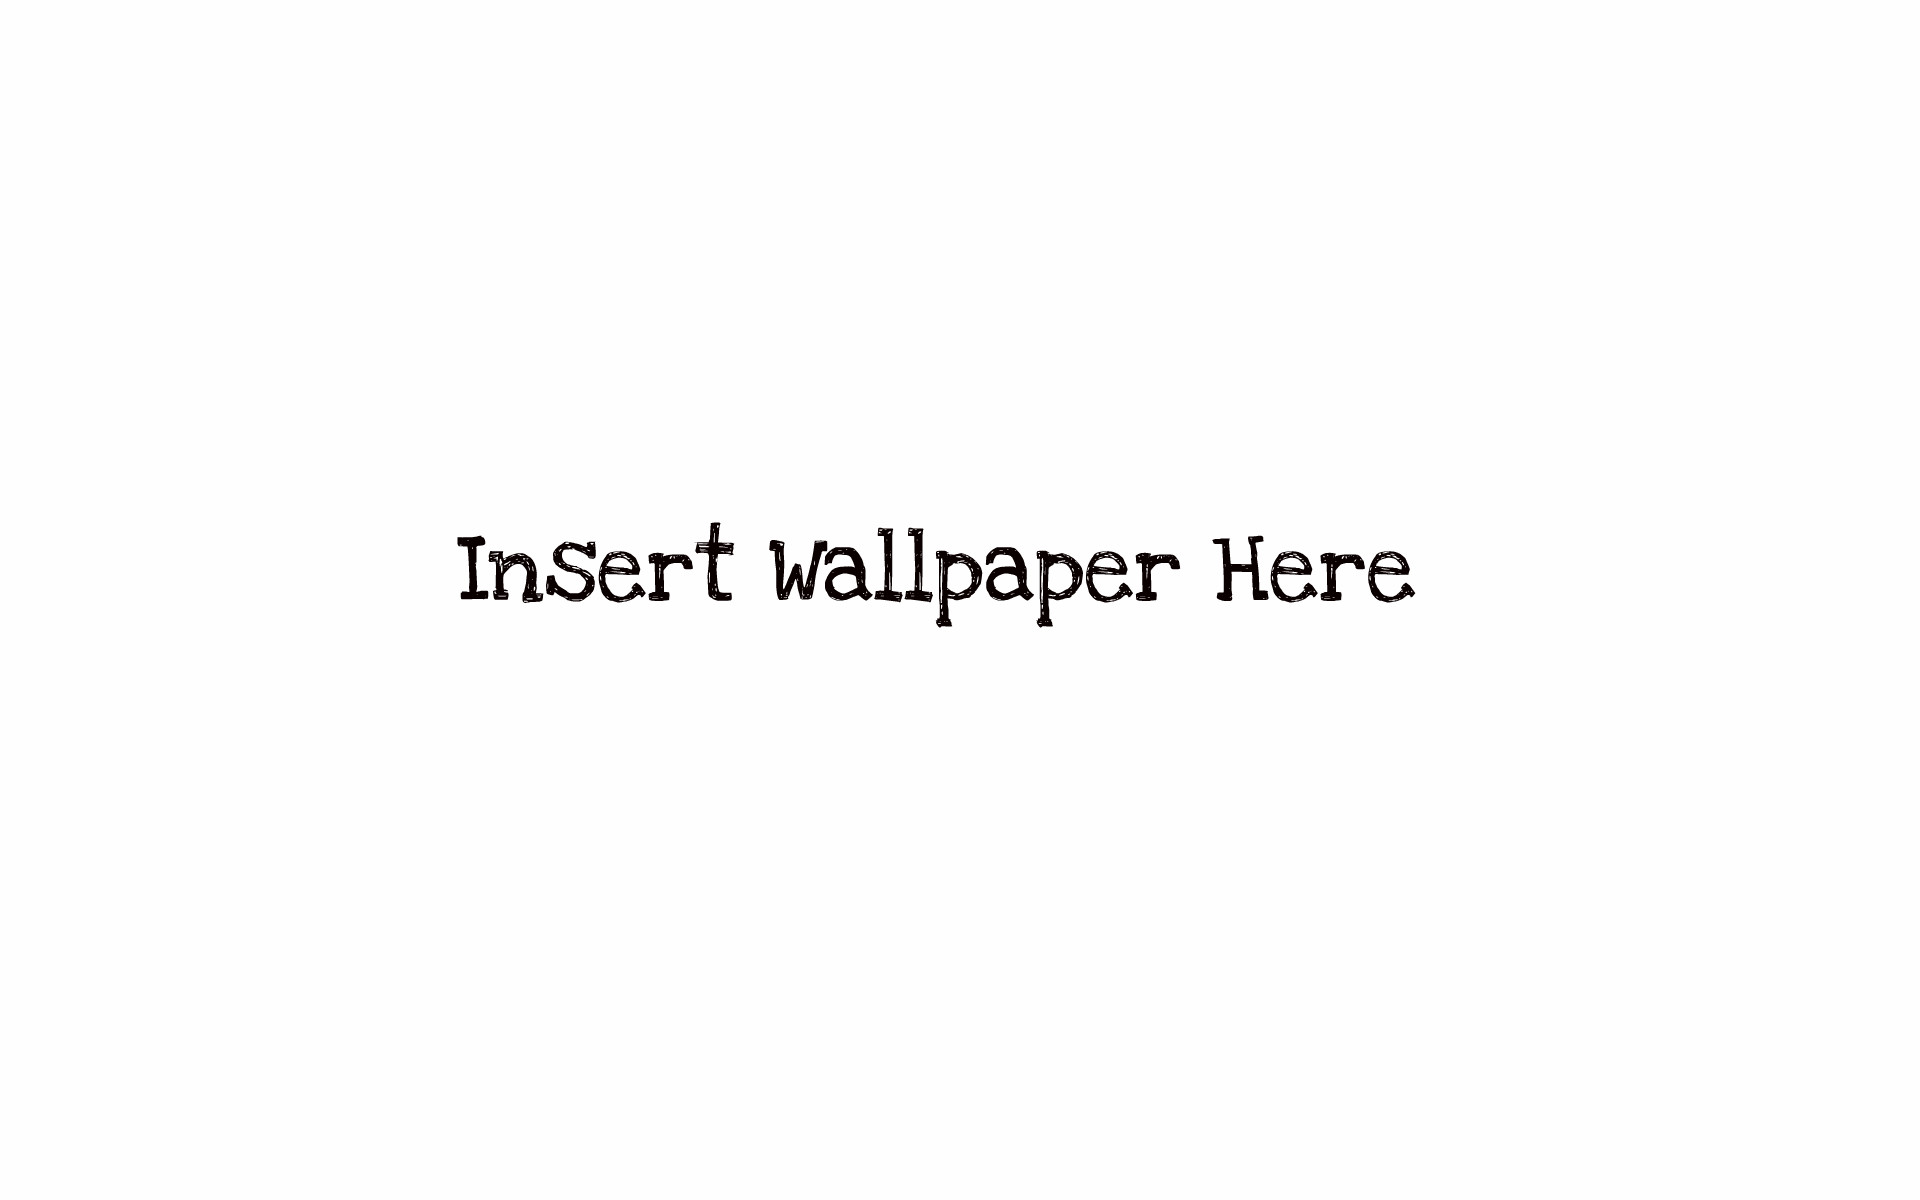 Grayscale basic text only blank white background plain wallpaper .